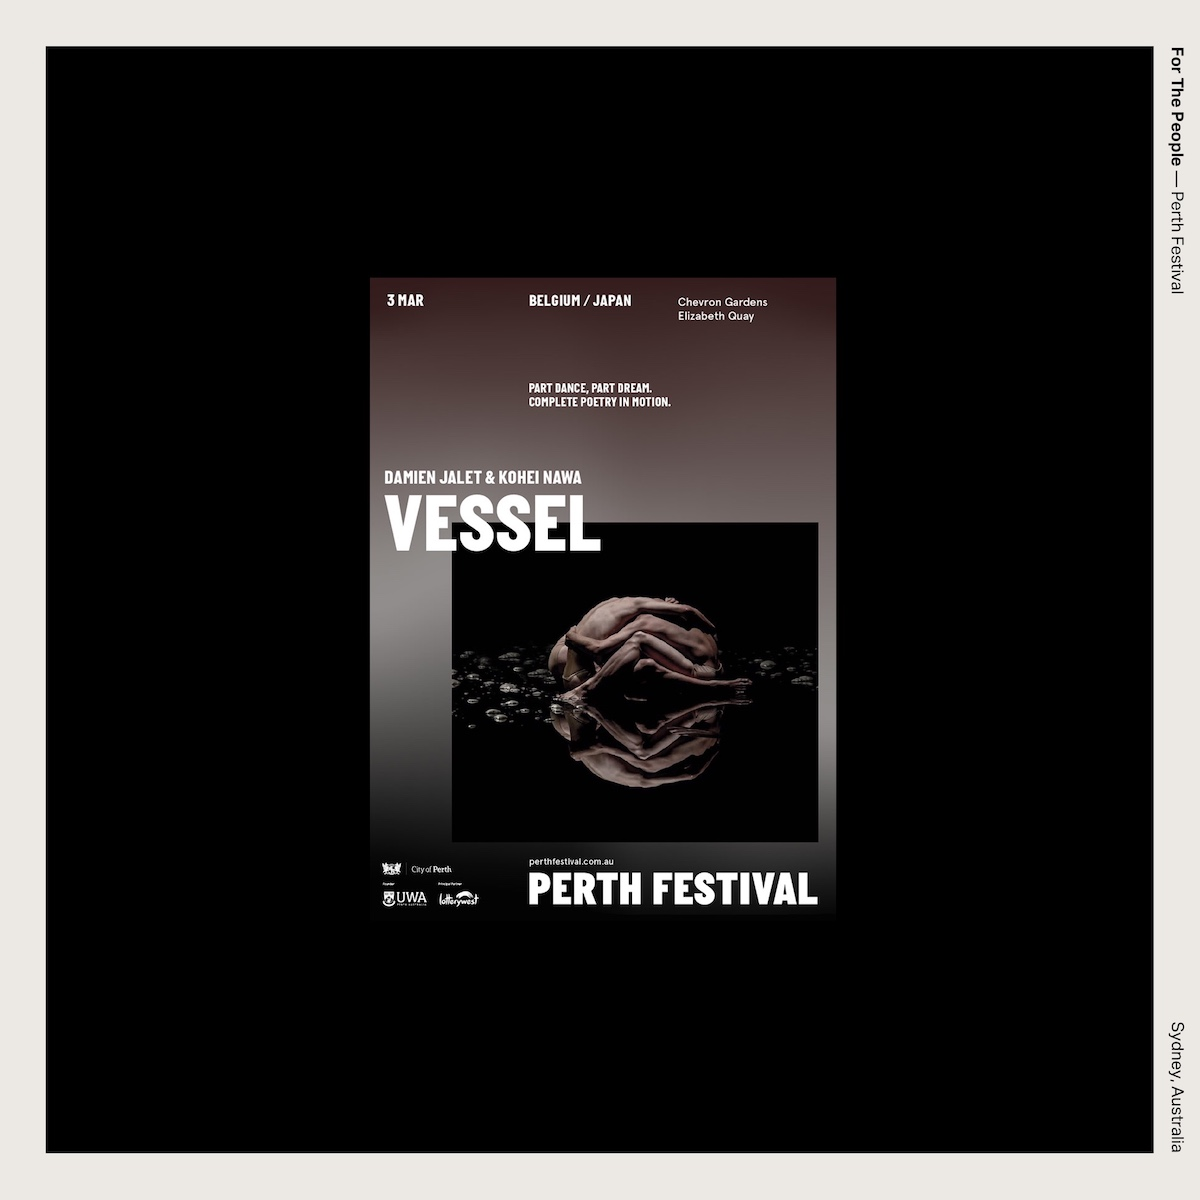 For The People — Perth Festival